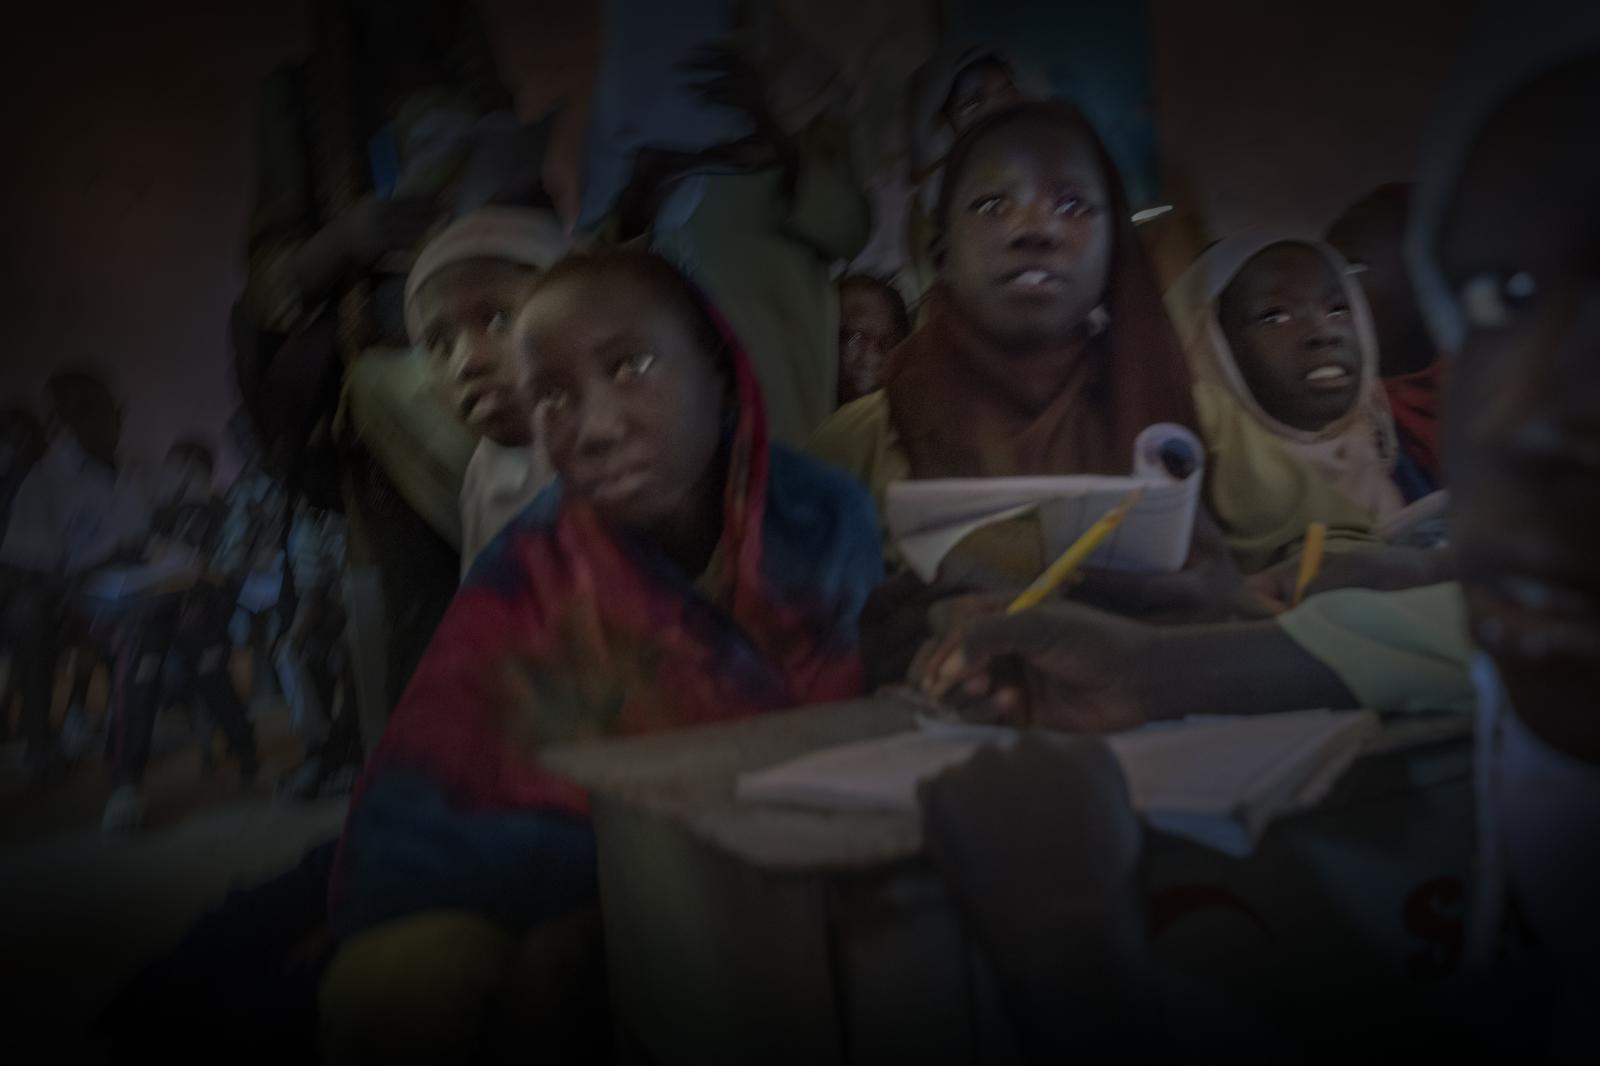 Sudanese and Southern Sudanese children (there are over 2.2 million Southern Sudanese refugees in Sudan) in a school in El Daein, in Darfur (Sudan).